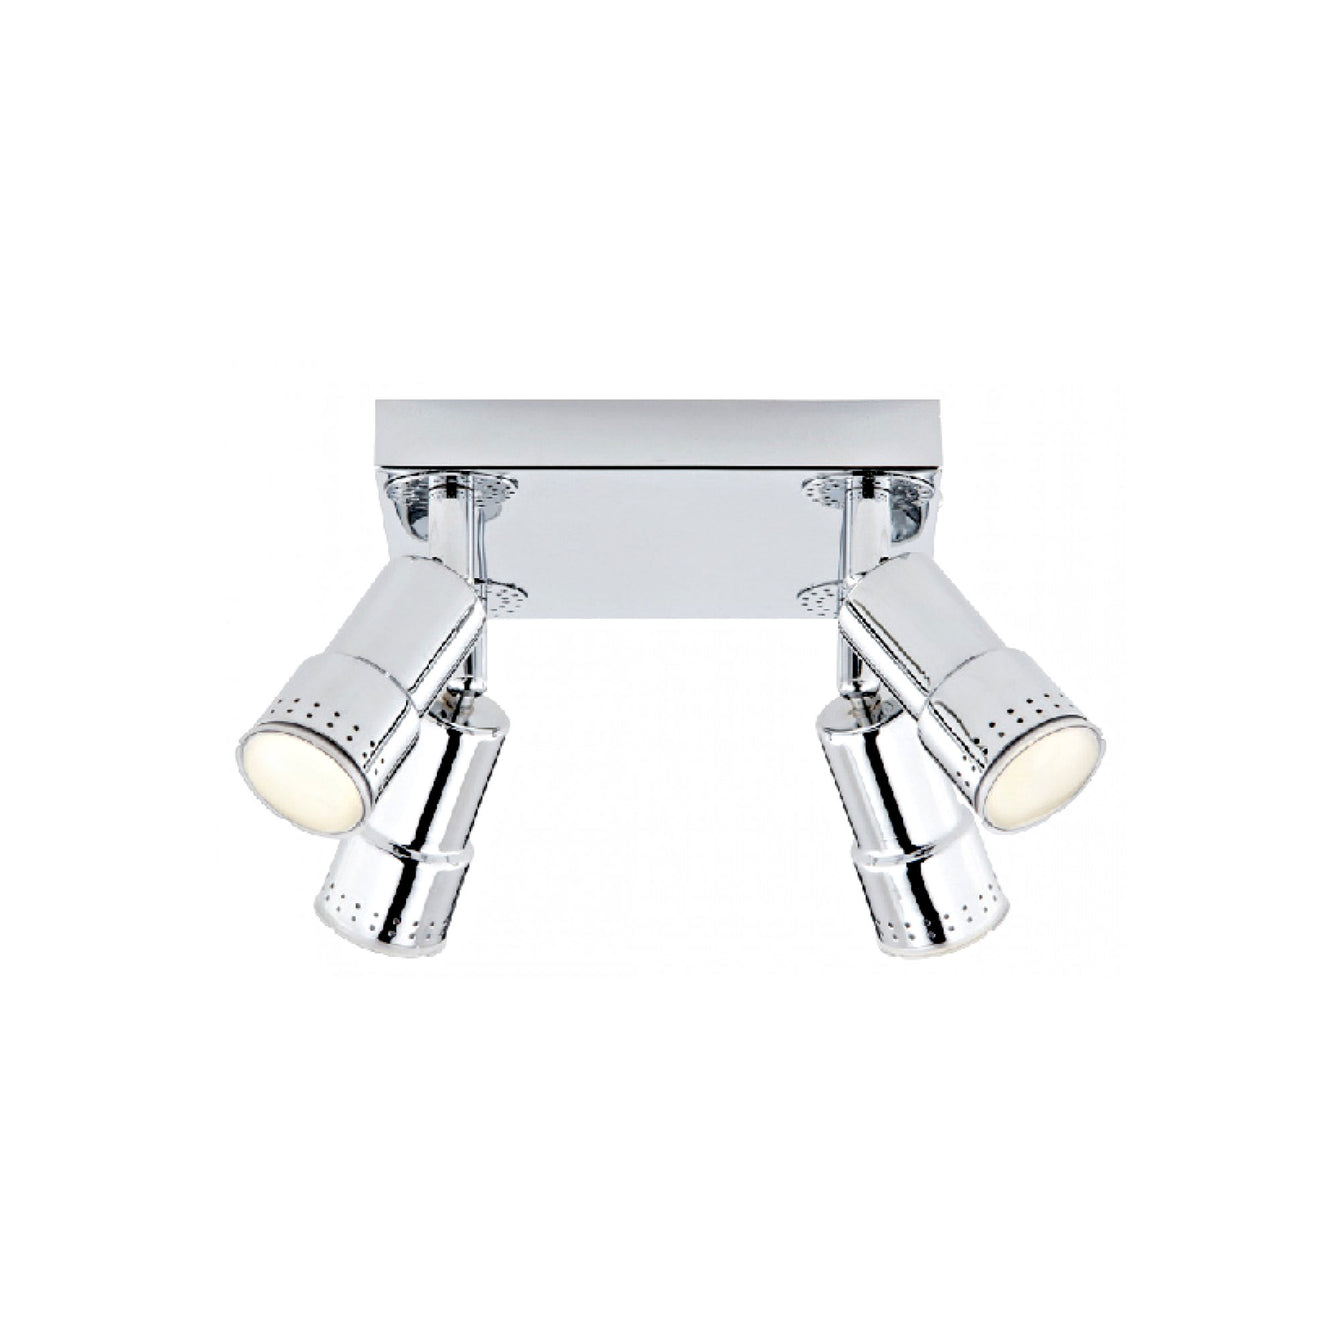 Bern 4 Spot Square and Bar LED Light - Buy It Better Square